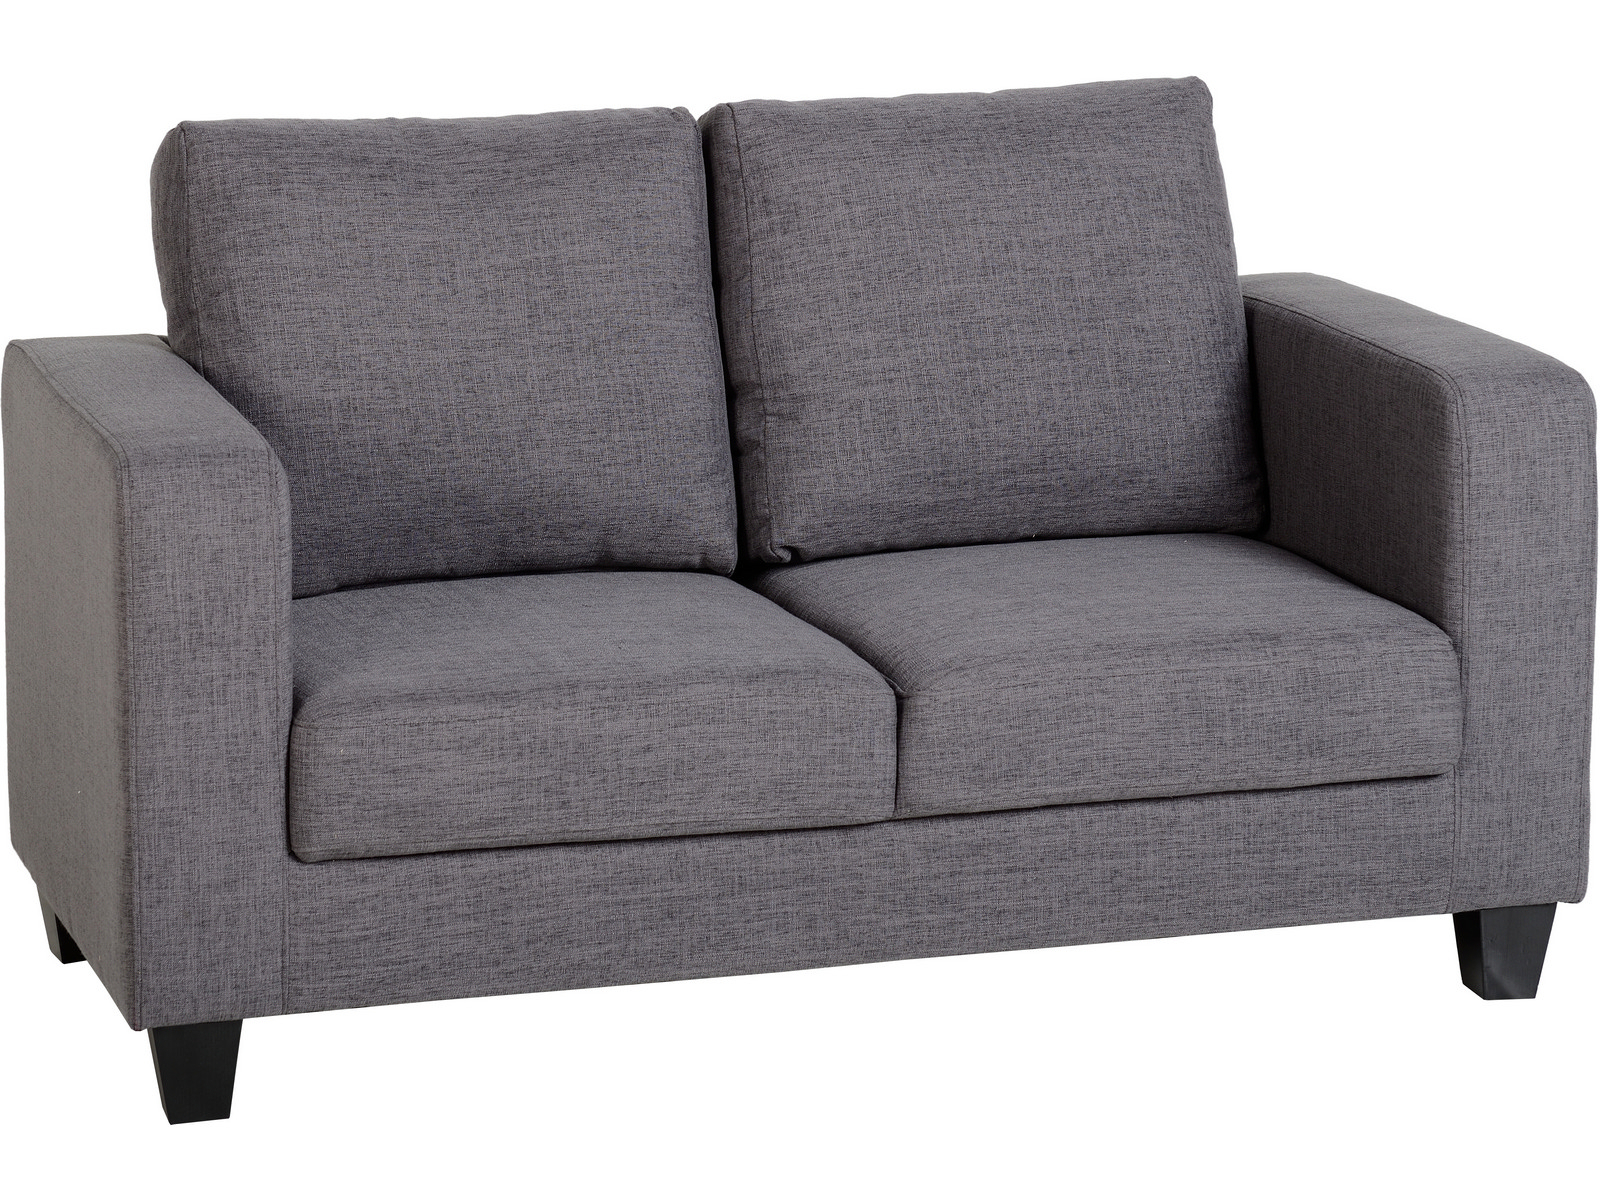 Seconique Tempo 2 Seater Sofa In A Box – Grey Fabric Regarding Two Seater Sofas (View 15 of 15)